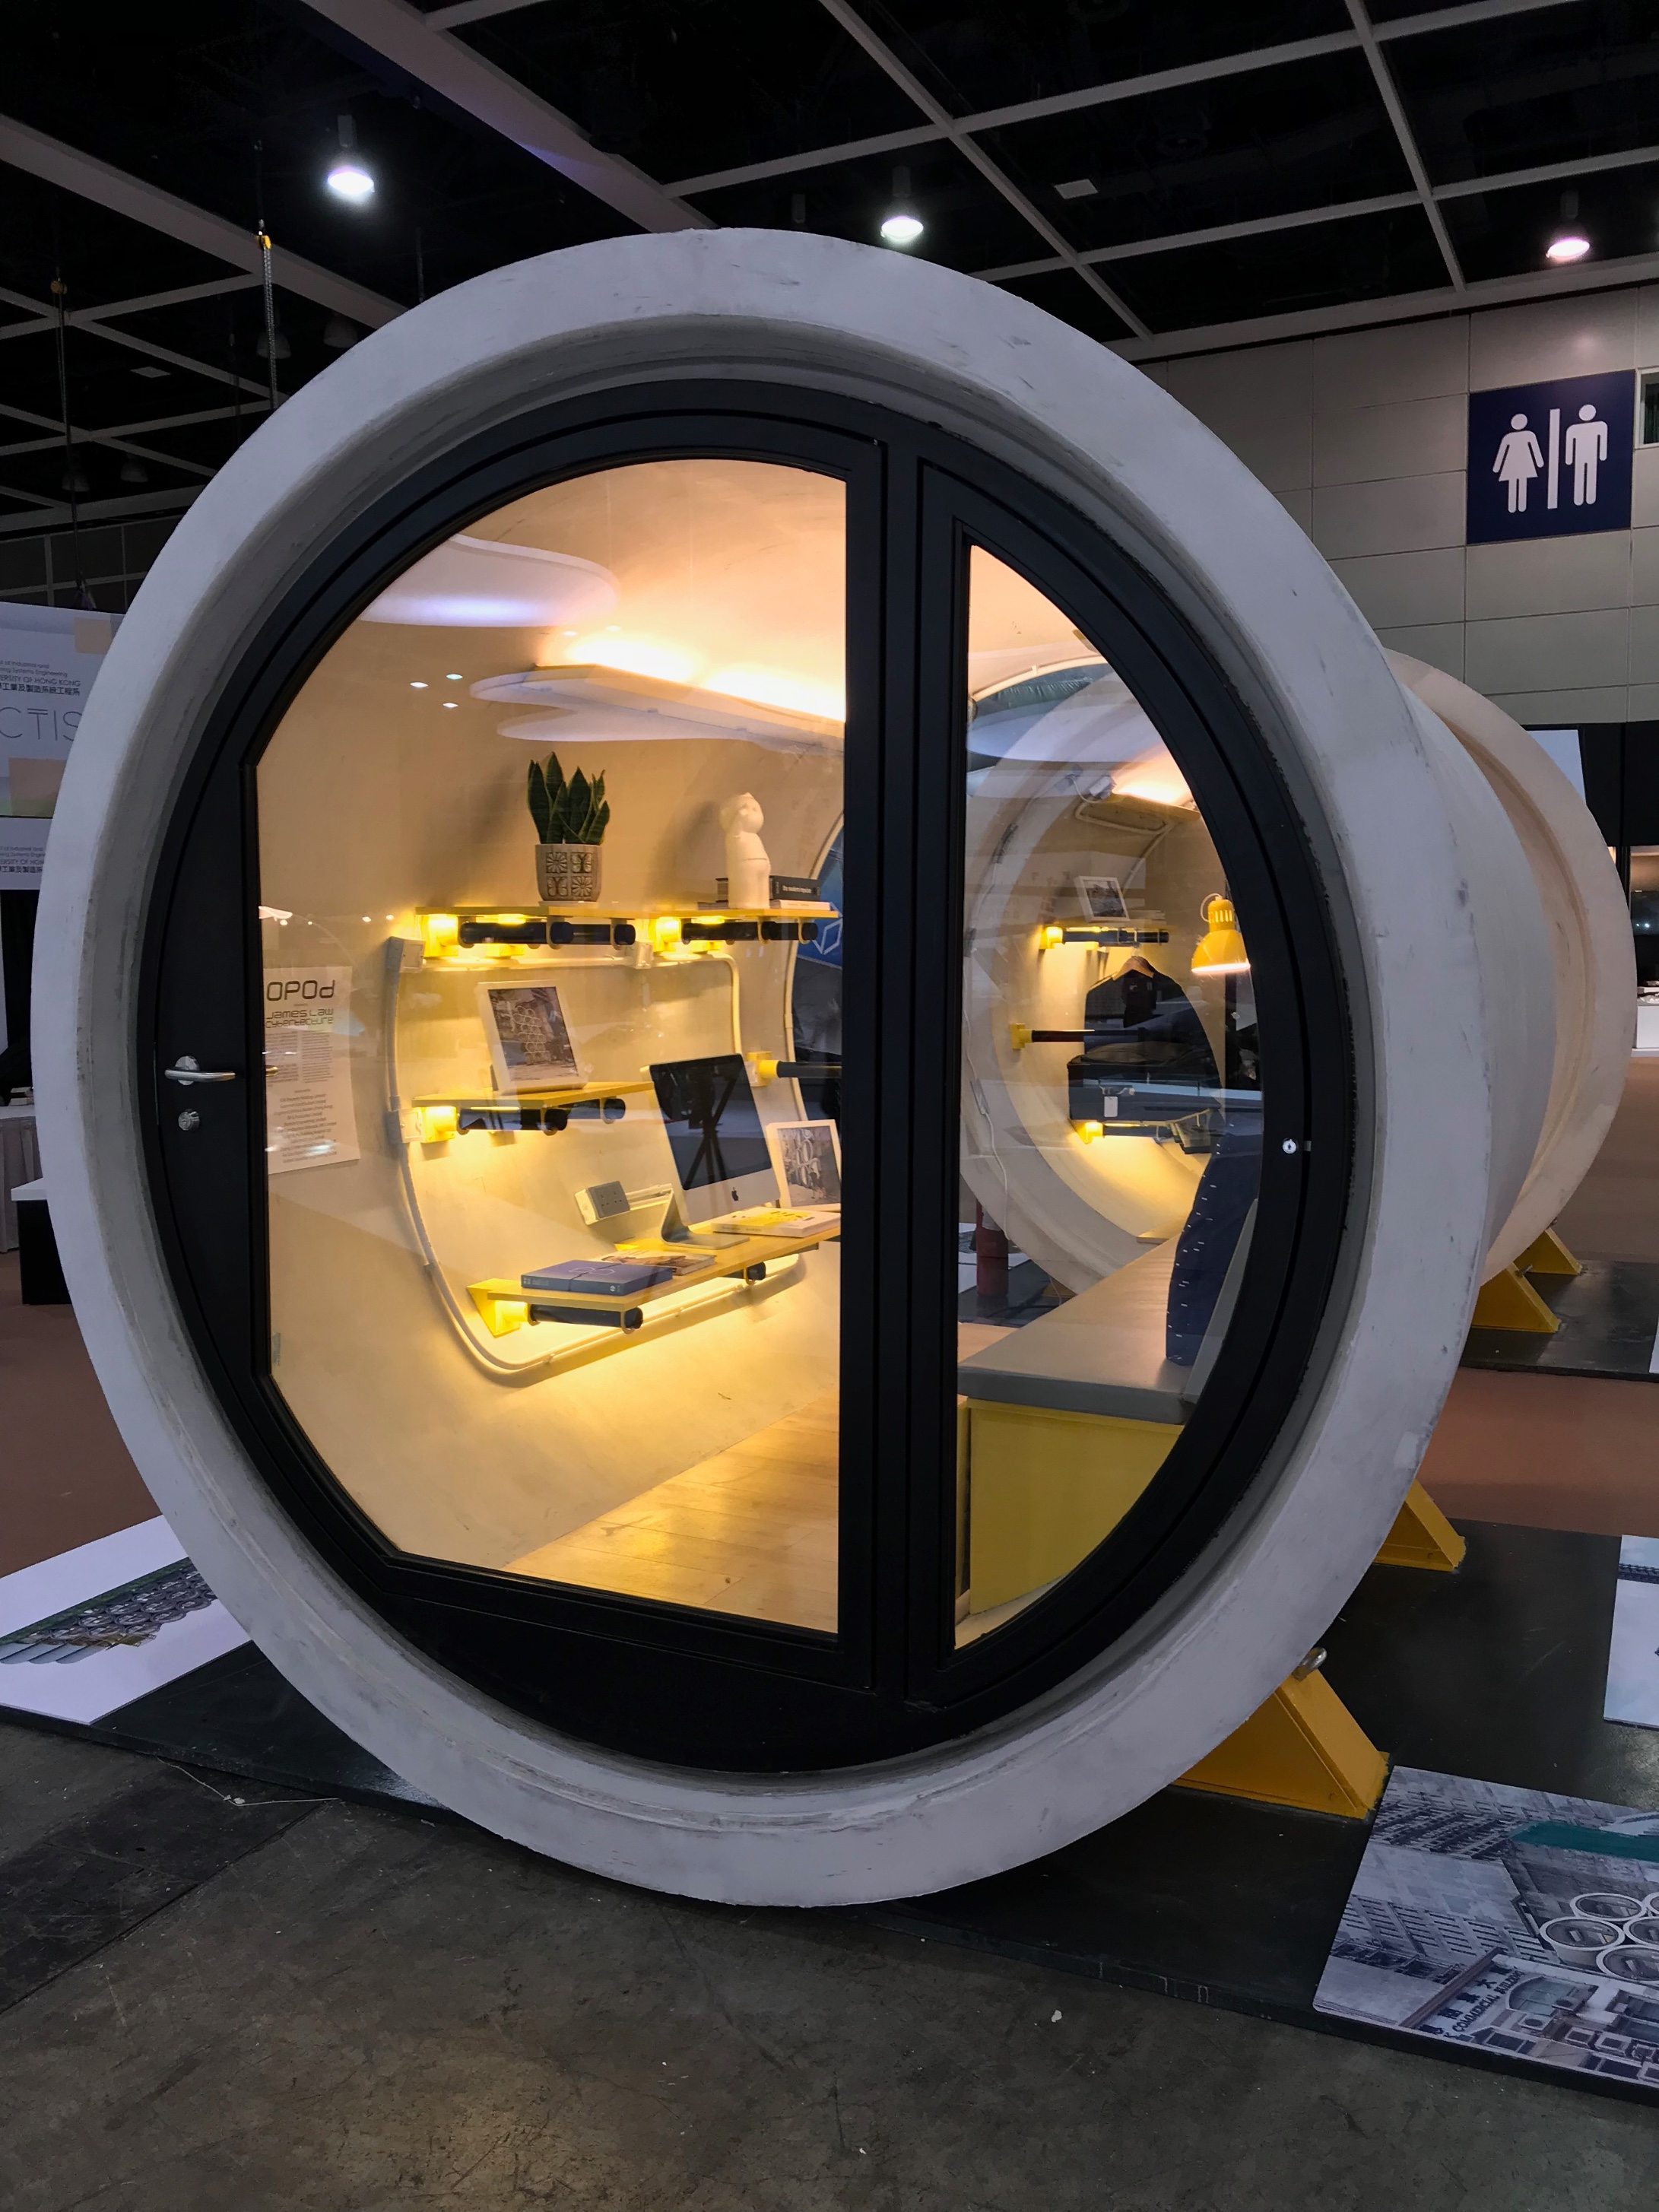 The next big thing in tiny housing Concrete pipes turned